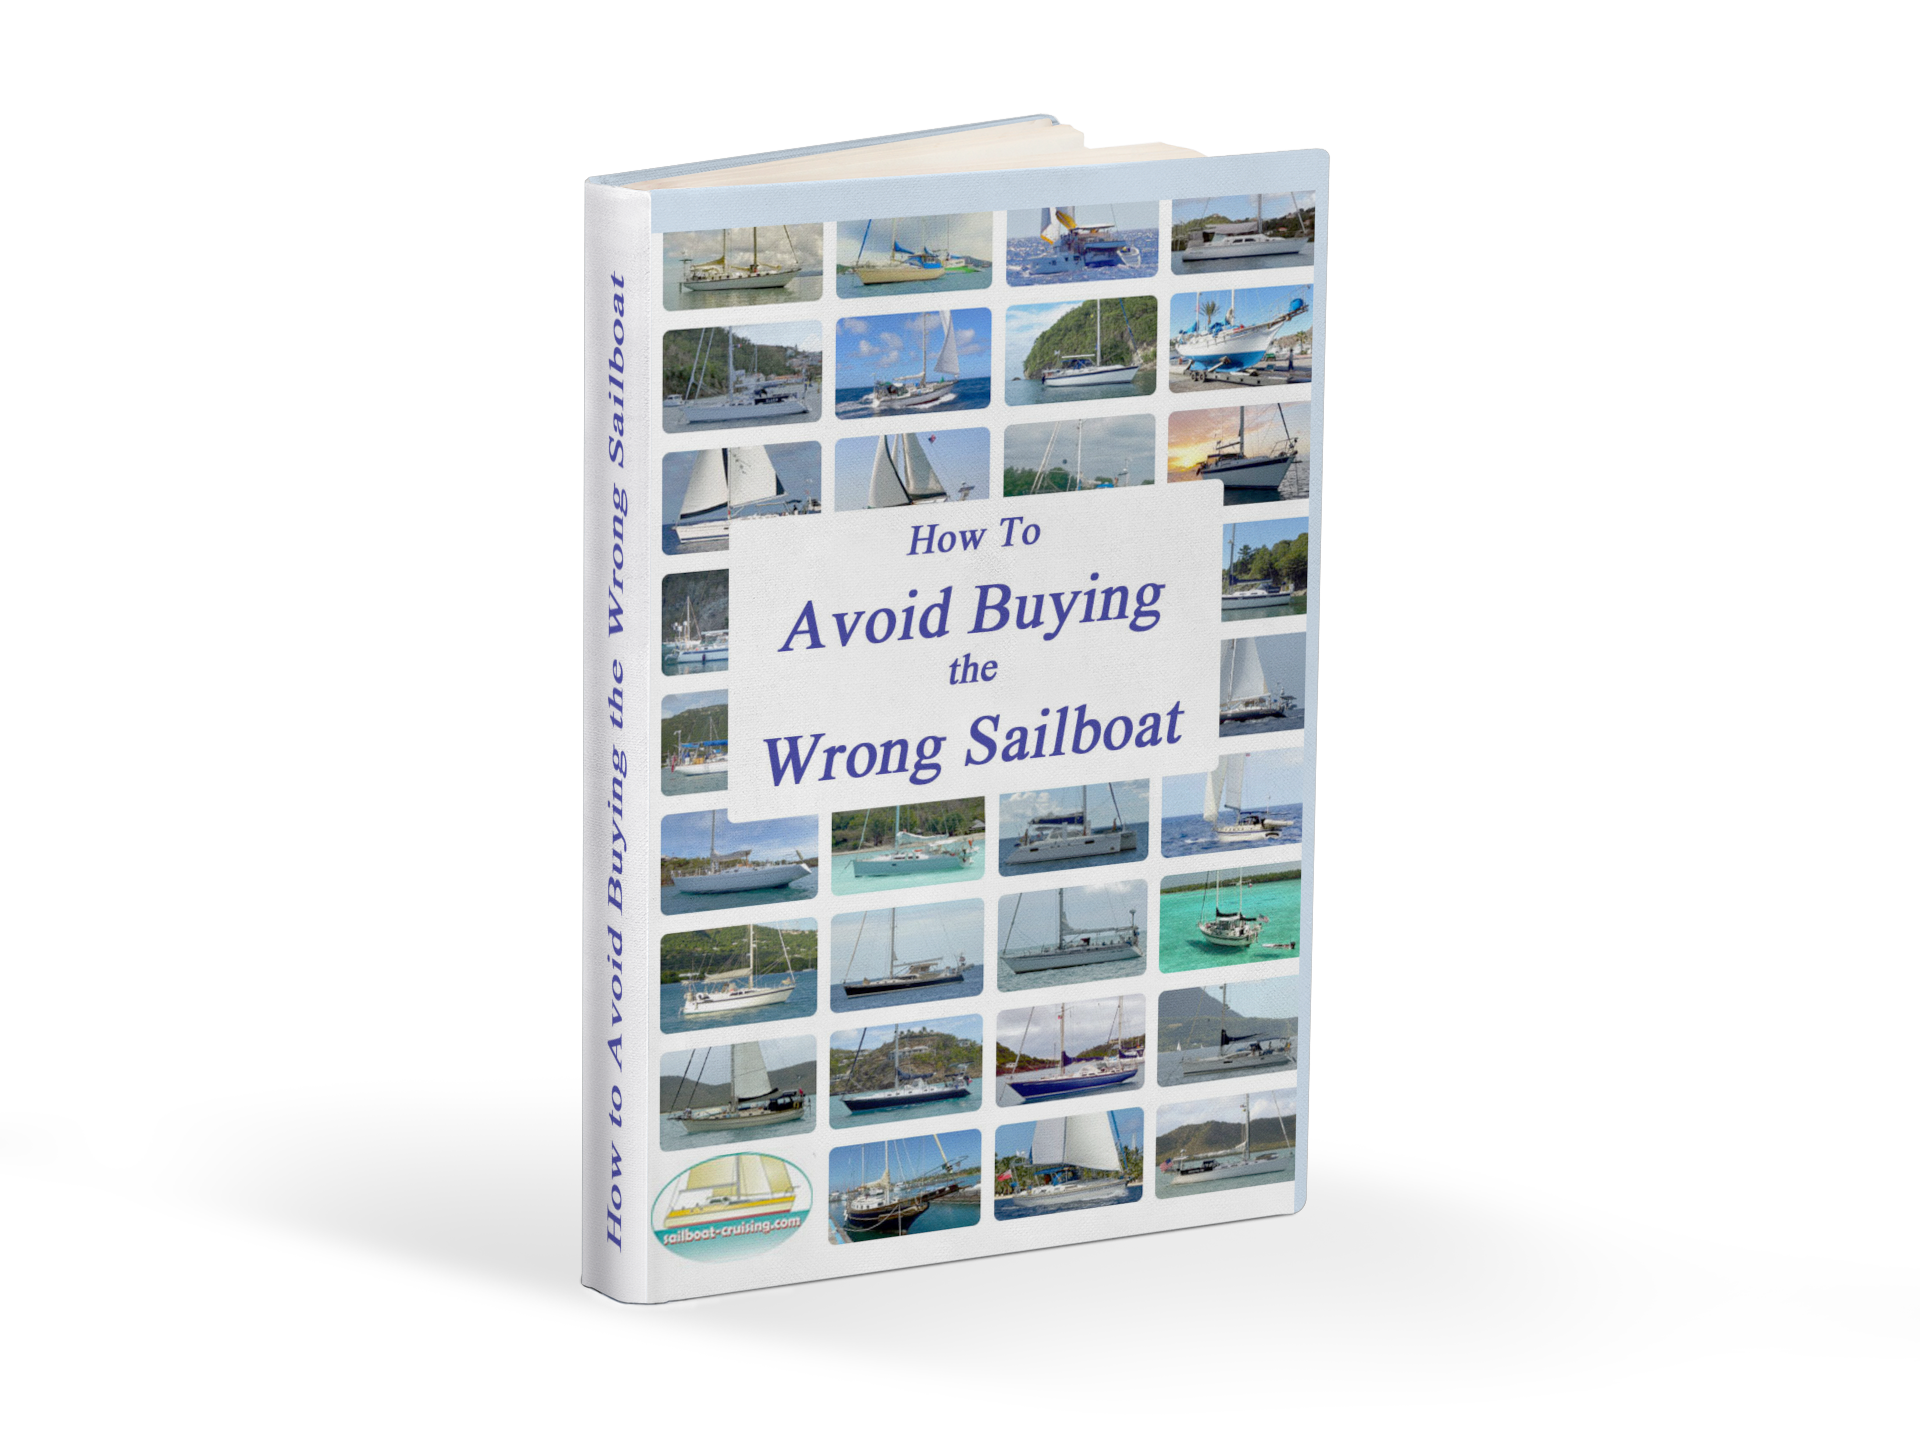 How to Avoid Buying the Wrong Sailboat